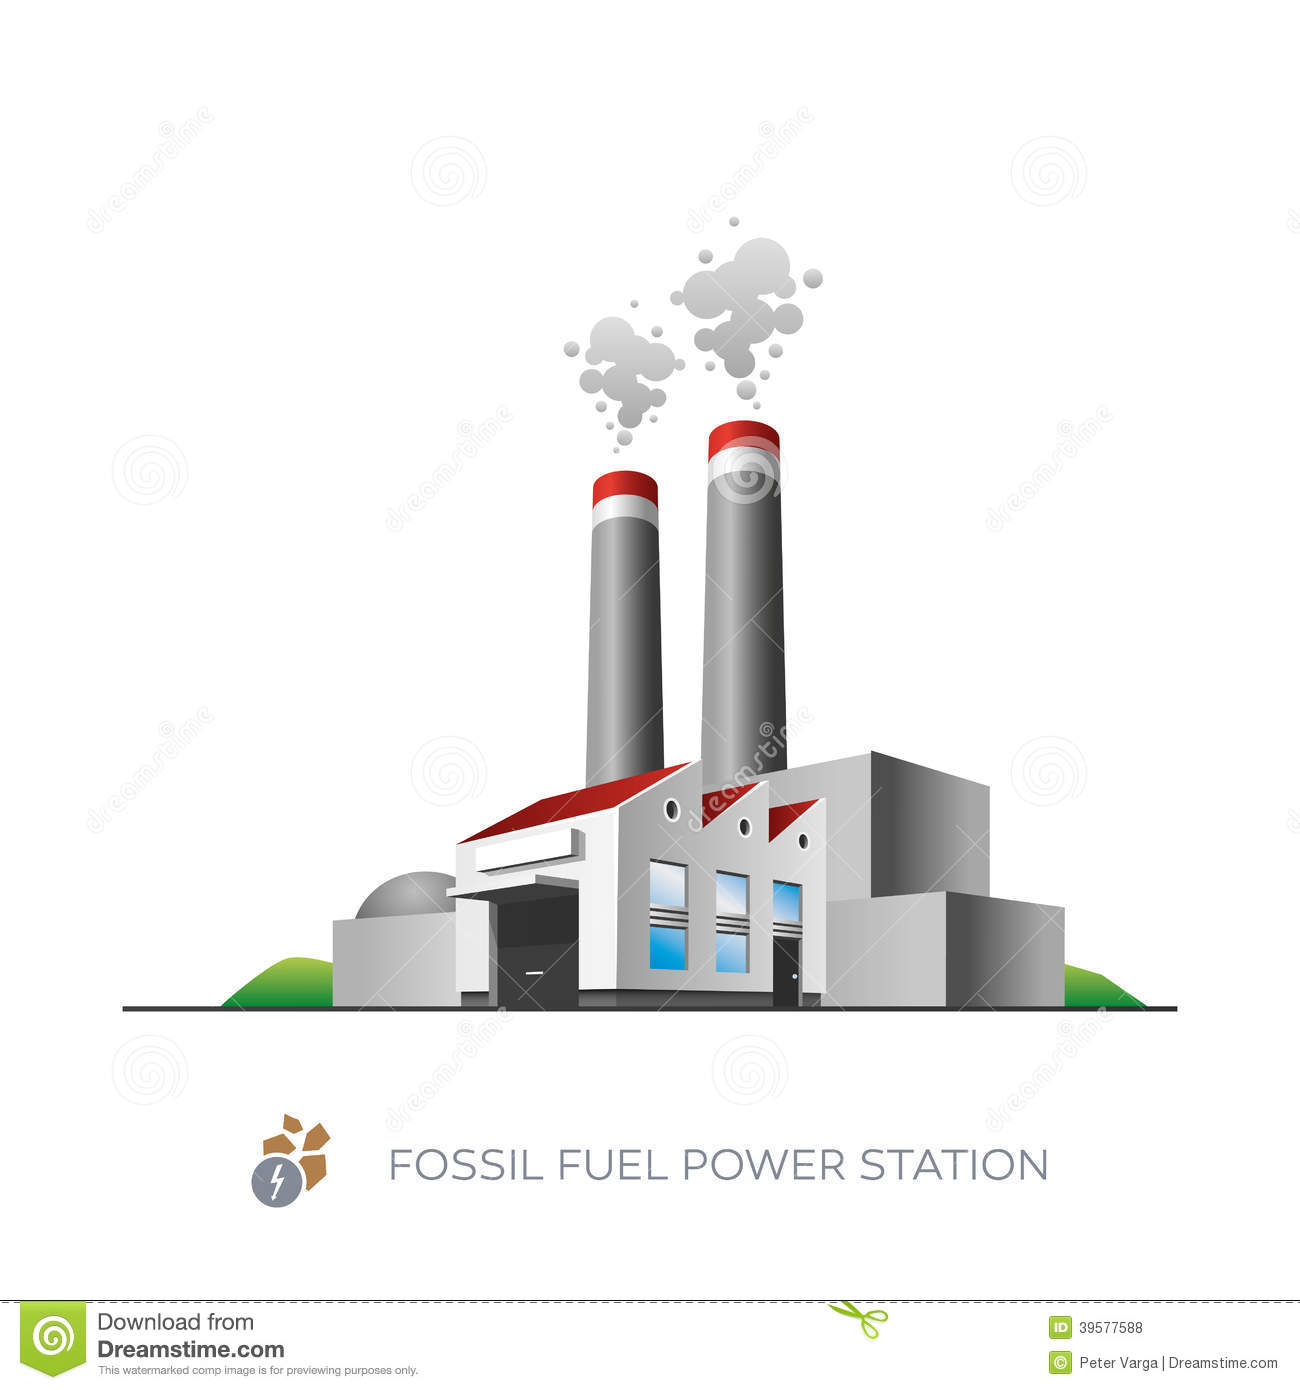 Fossil fuel power station stock vector. Illustration of ...